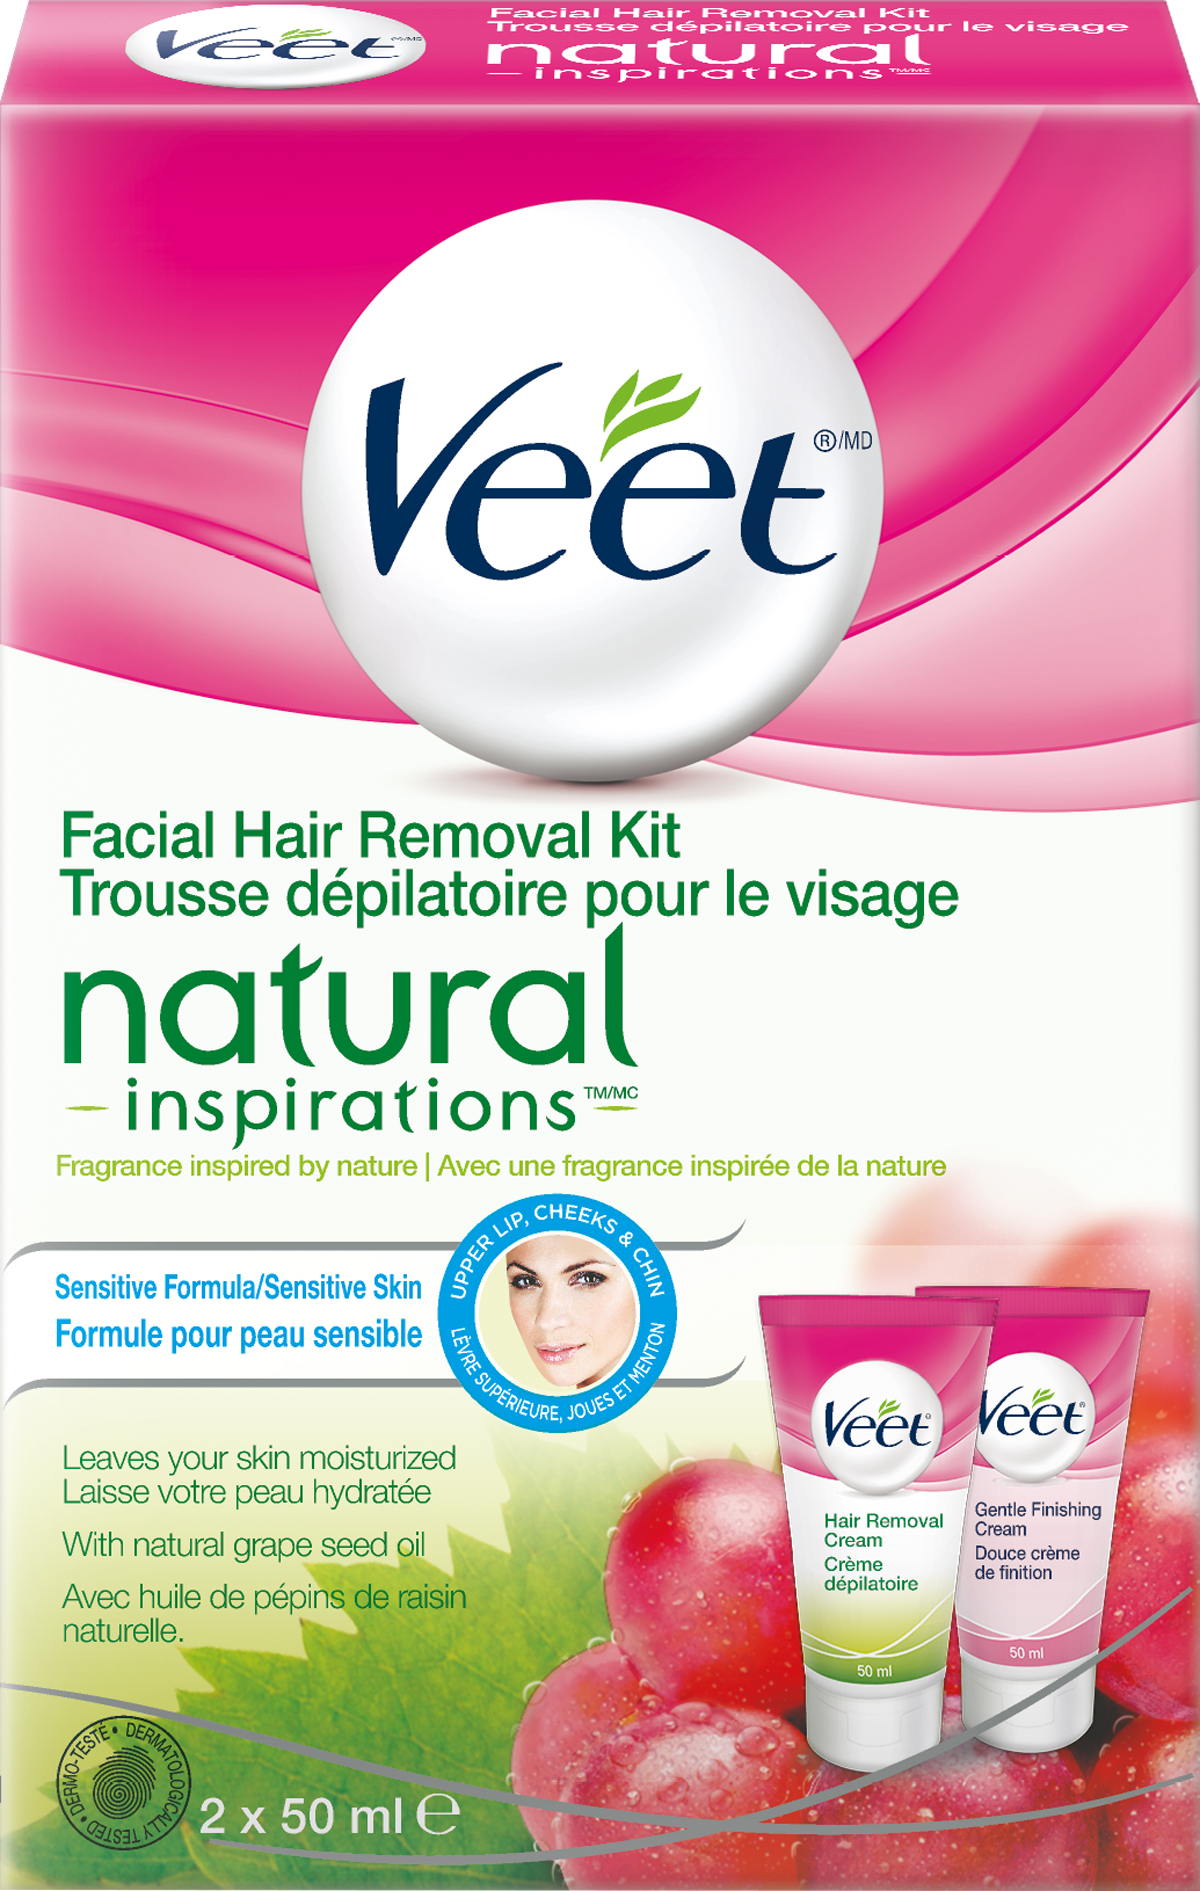 VEET® Natural Inspirations™ Facial Hair Removal Kit - Gentle Finishing Cream (Canada)